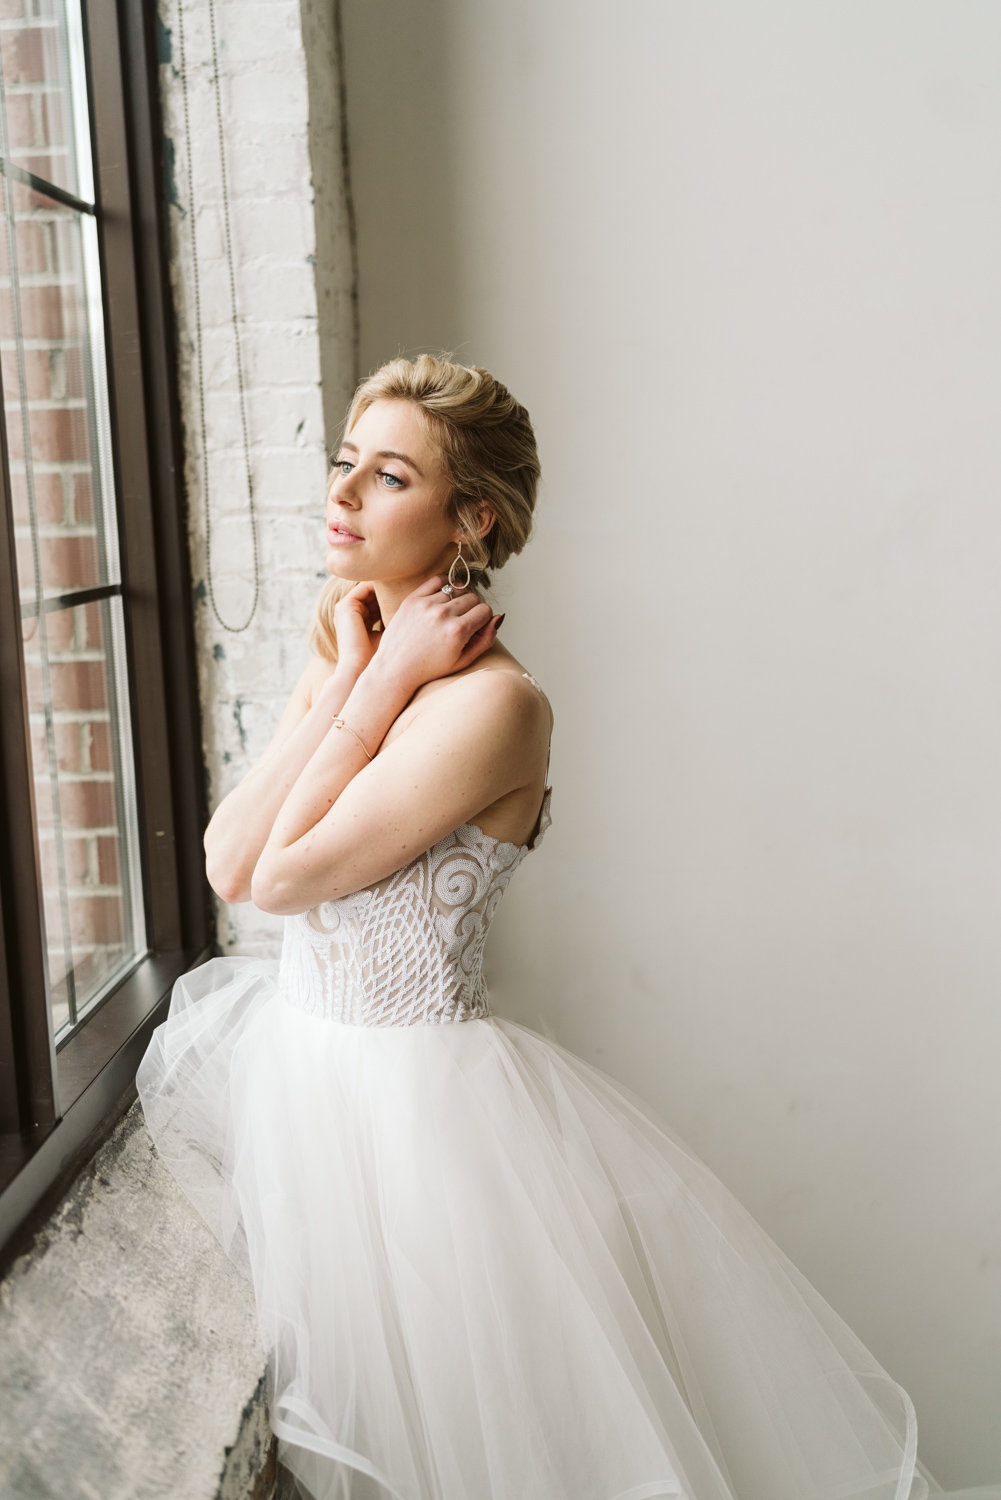 April Yentas Photography - January Styled Shoot-438.jpg